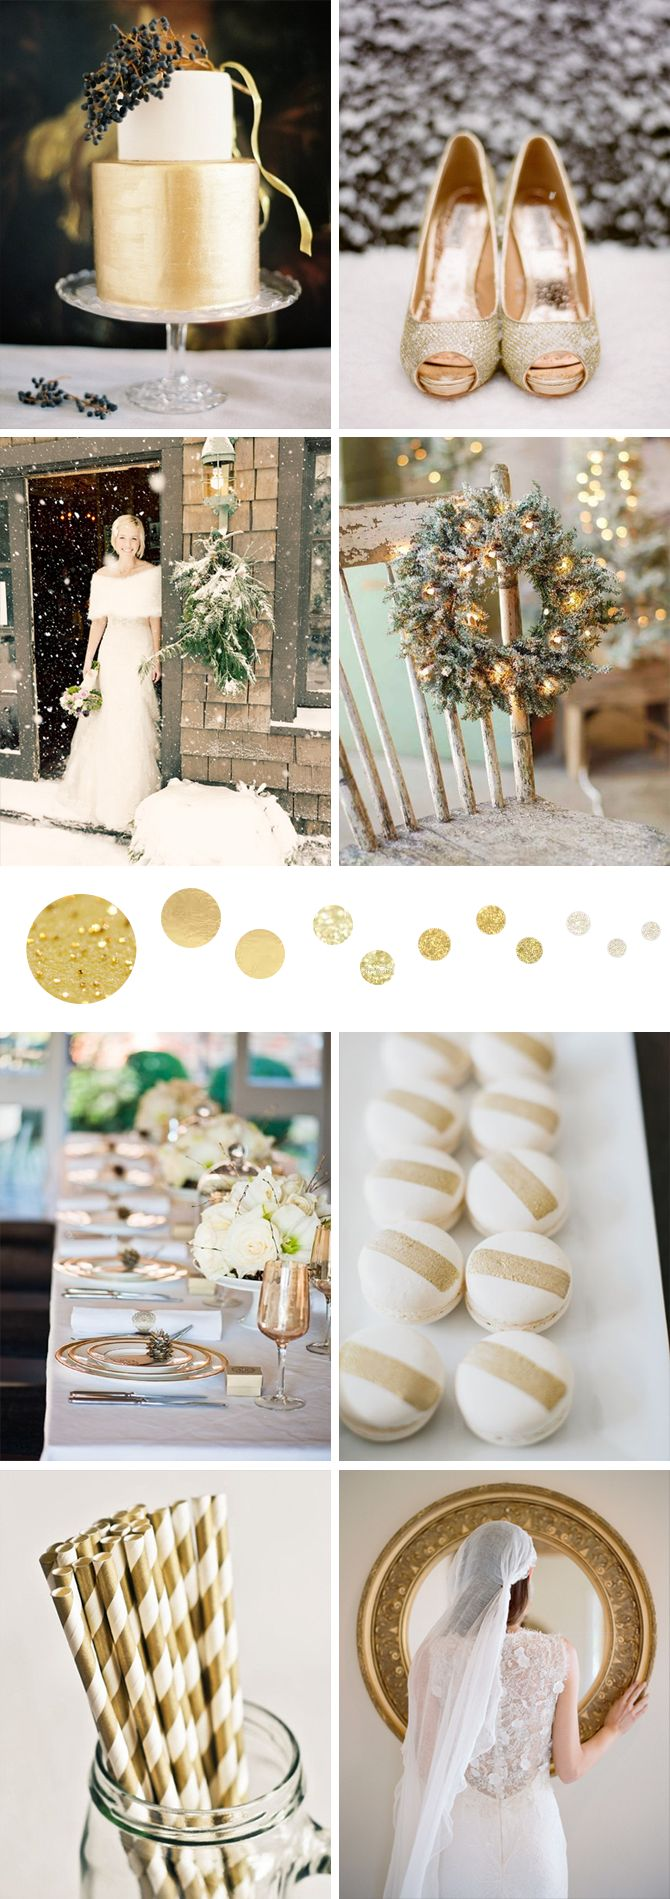 Winter white and gold board | via Originální Svatba